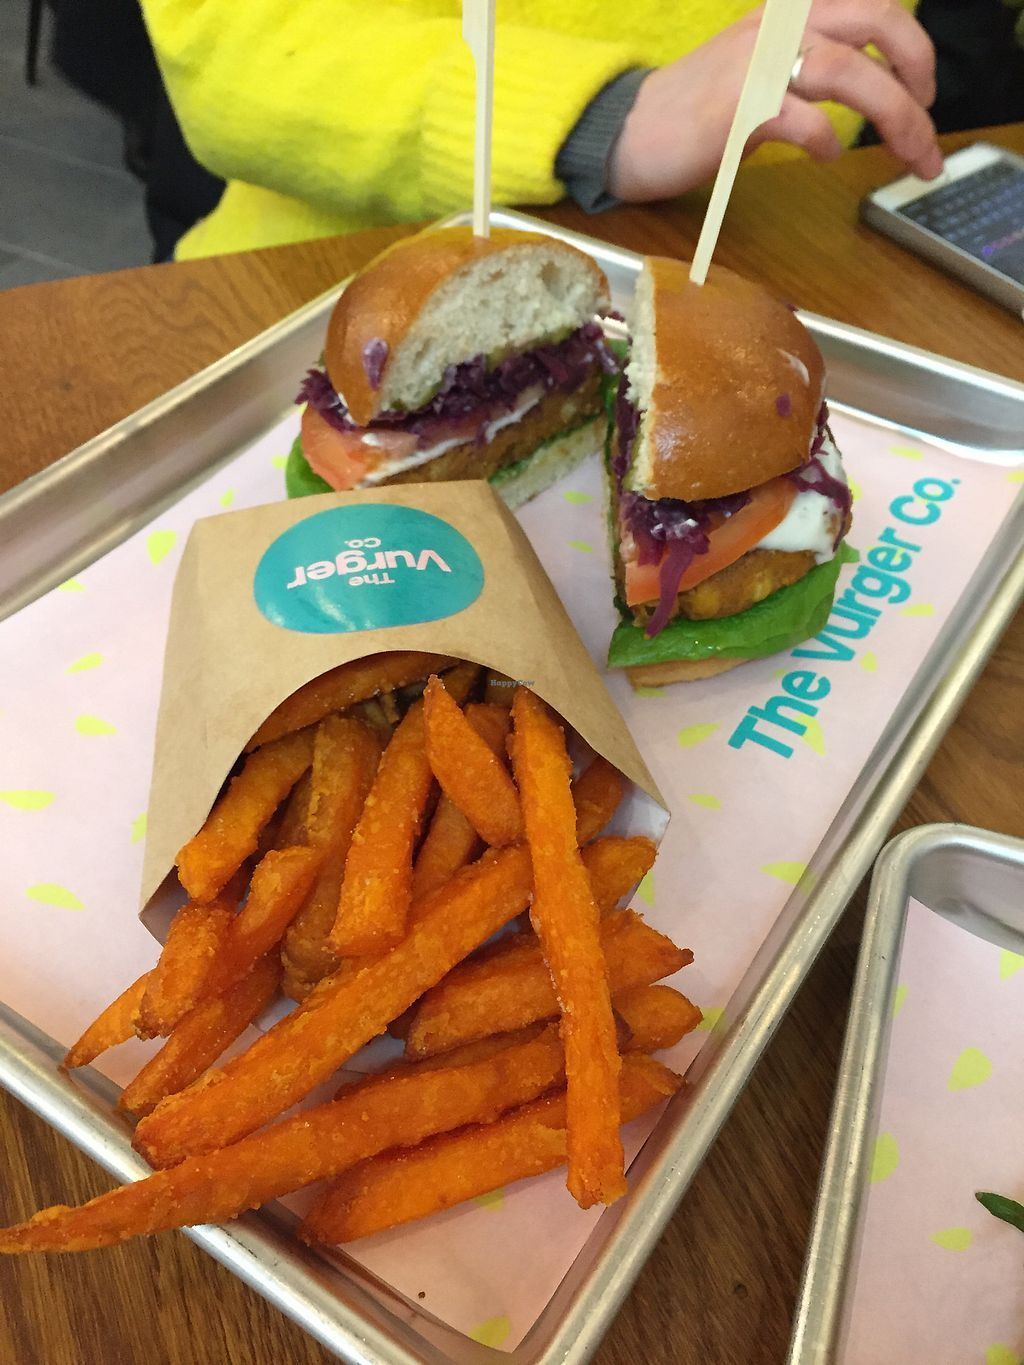 """Photo of The Vurger Co.  by <a href=""""/members/profile/koringal"""">koringal</a> <br/>Auburger + sweet potato fries <br/> March 23, 2018  - <a href='/contact/abuse/image/92574/374905'>Report</a>"""